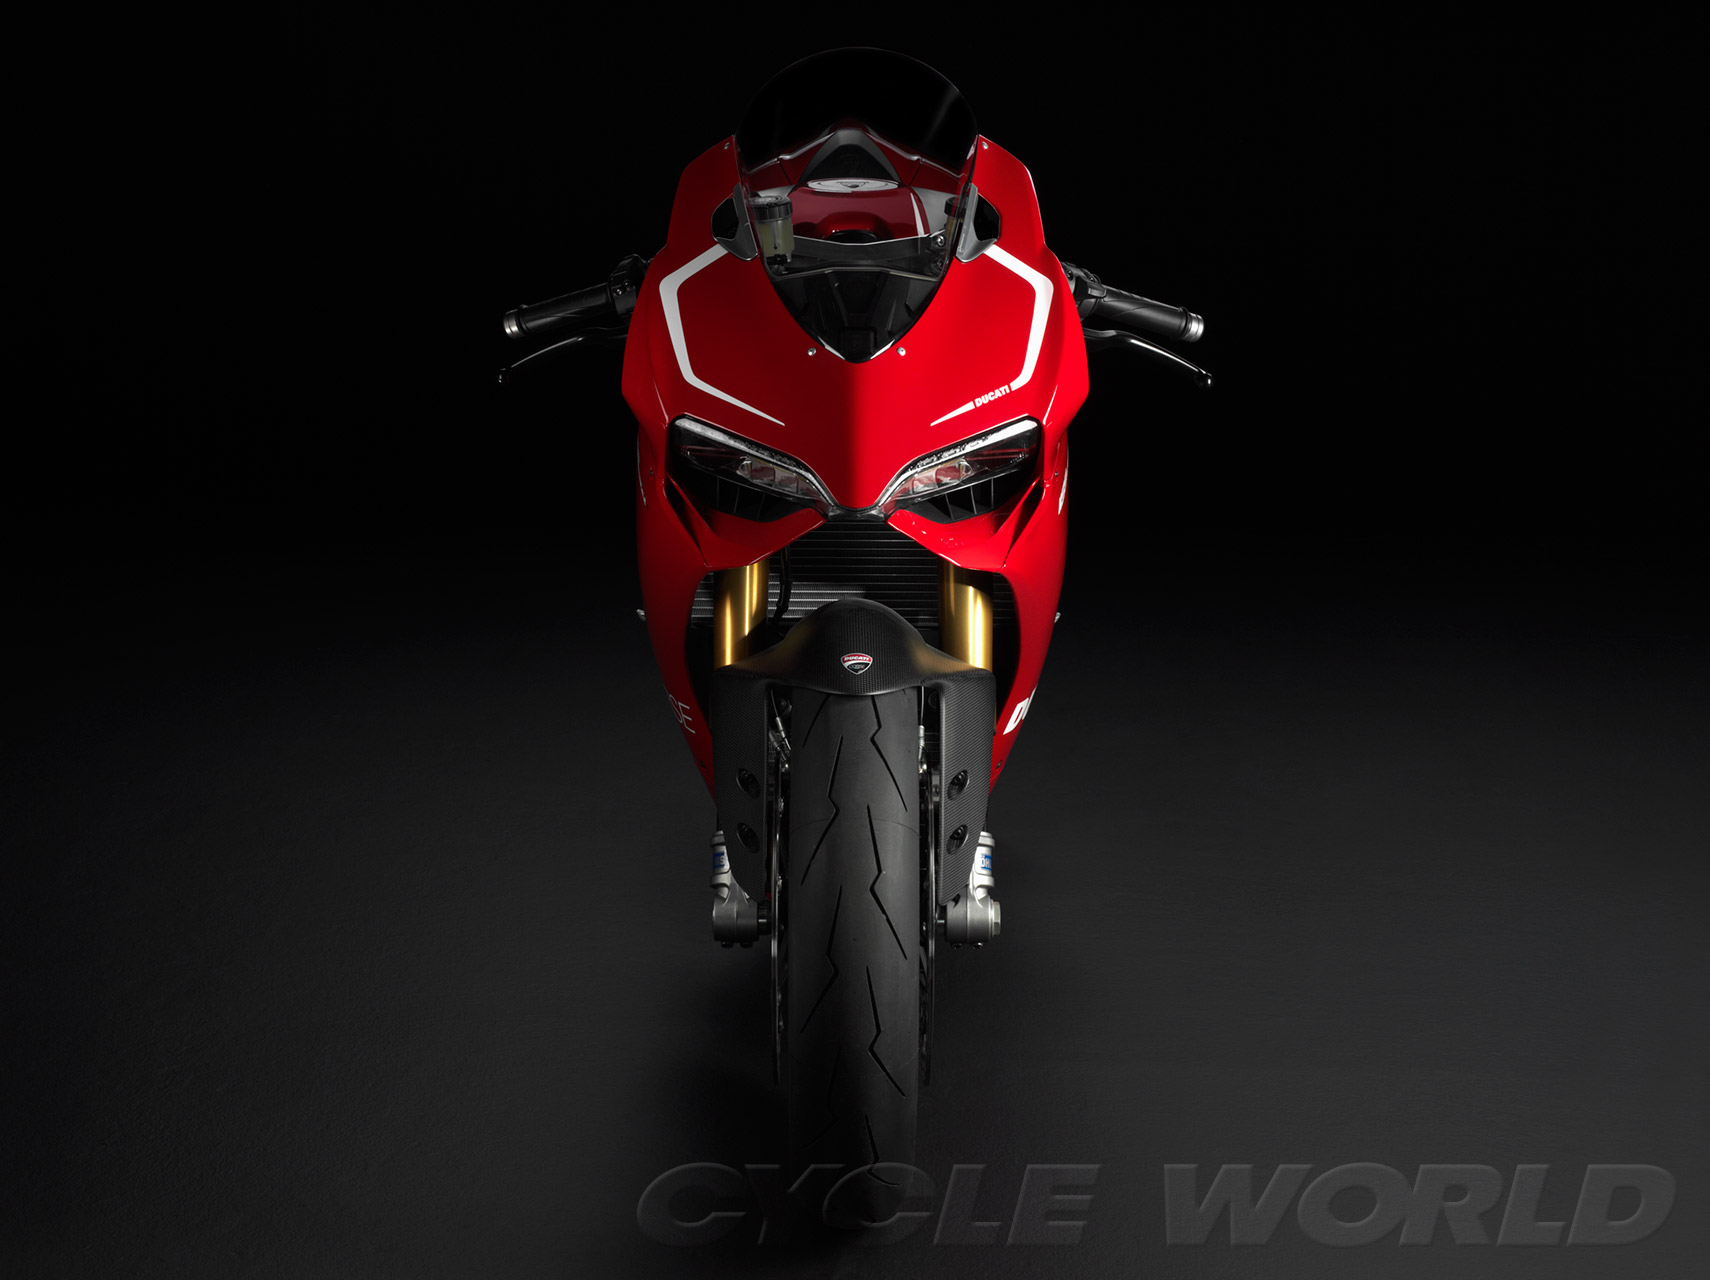 Ducati Panigale Front 21899 Hd Wallpapers in Bikes   Imagescicom 1710x1280